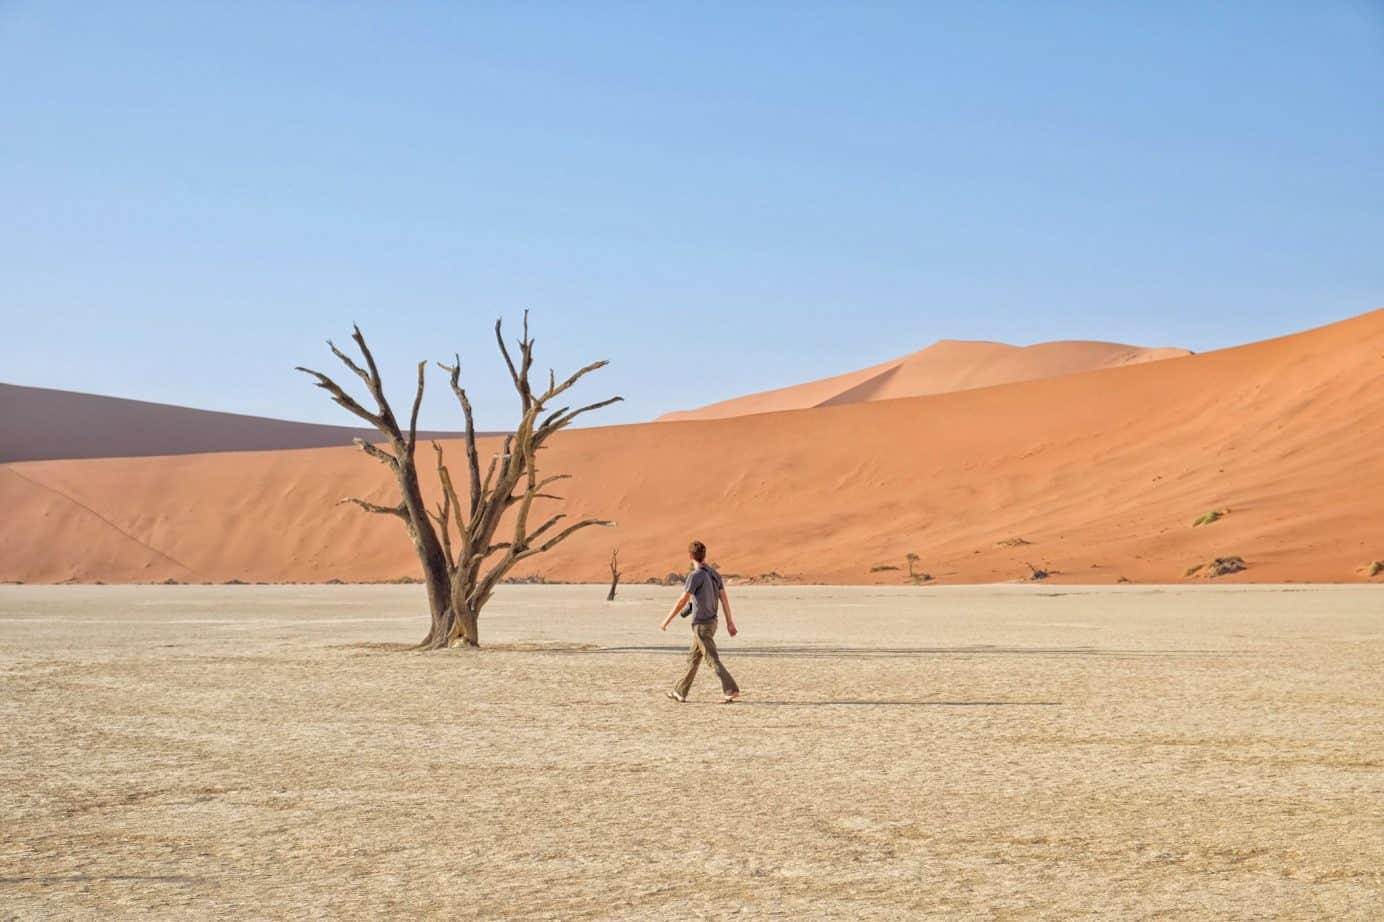 Exploring Deadvlei